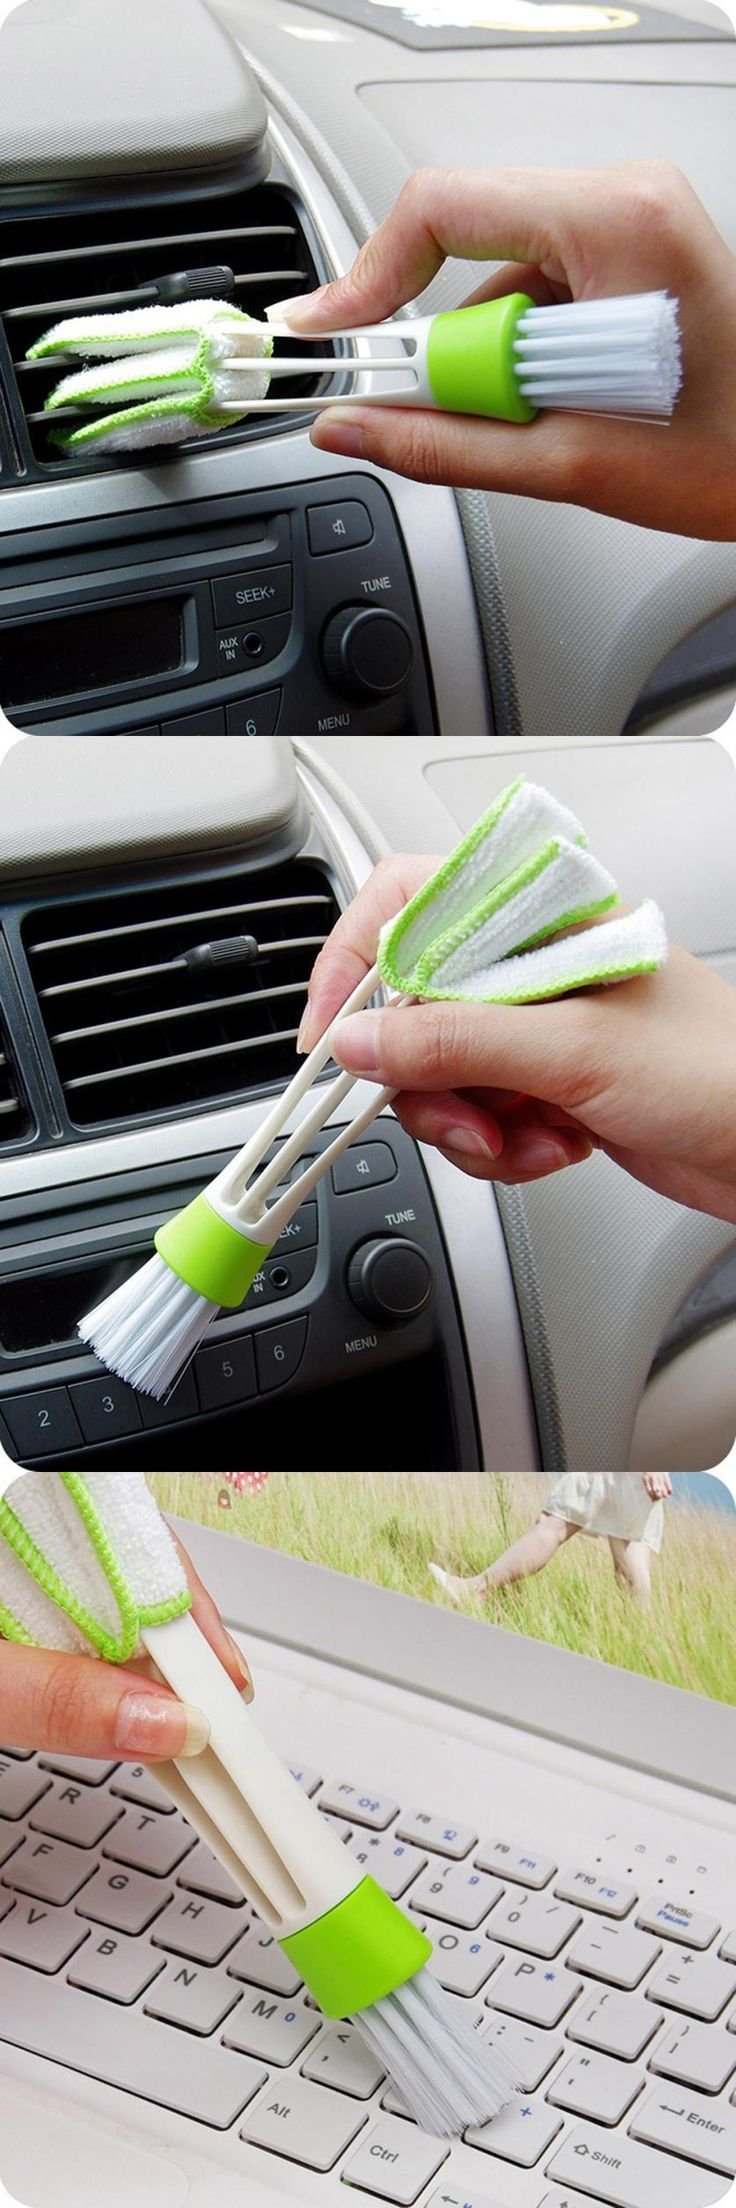 ISHOWTIENDA New Keyboard Dust Collector Computer Clean Tools Window Blinds Cleaner Levert Dropship Car Cleaning Tool